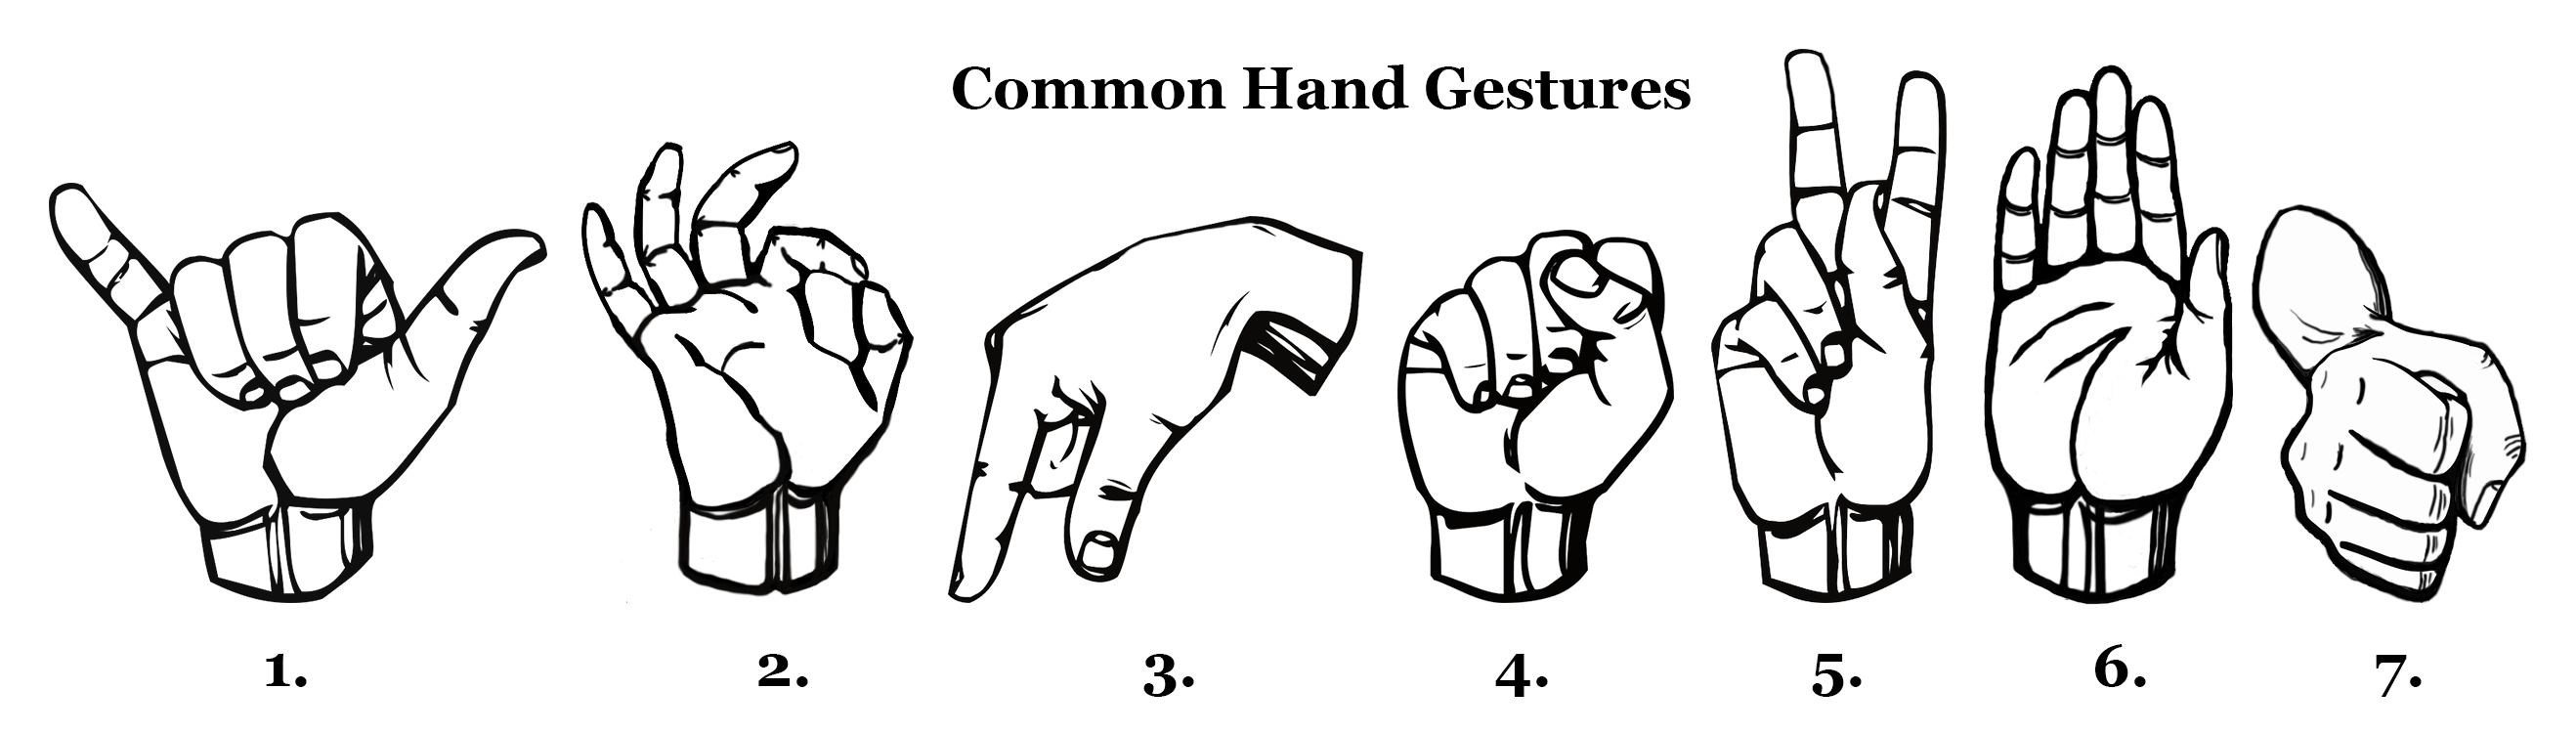 A Diagram Illustrating 7mon Hand Gestures Hands References How To Animate